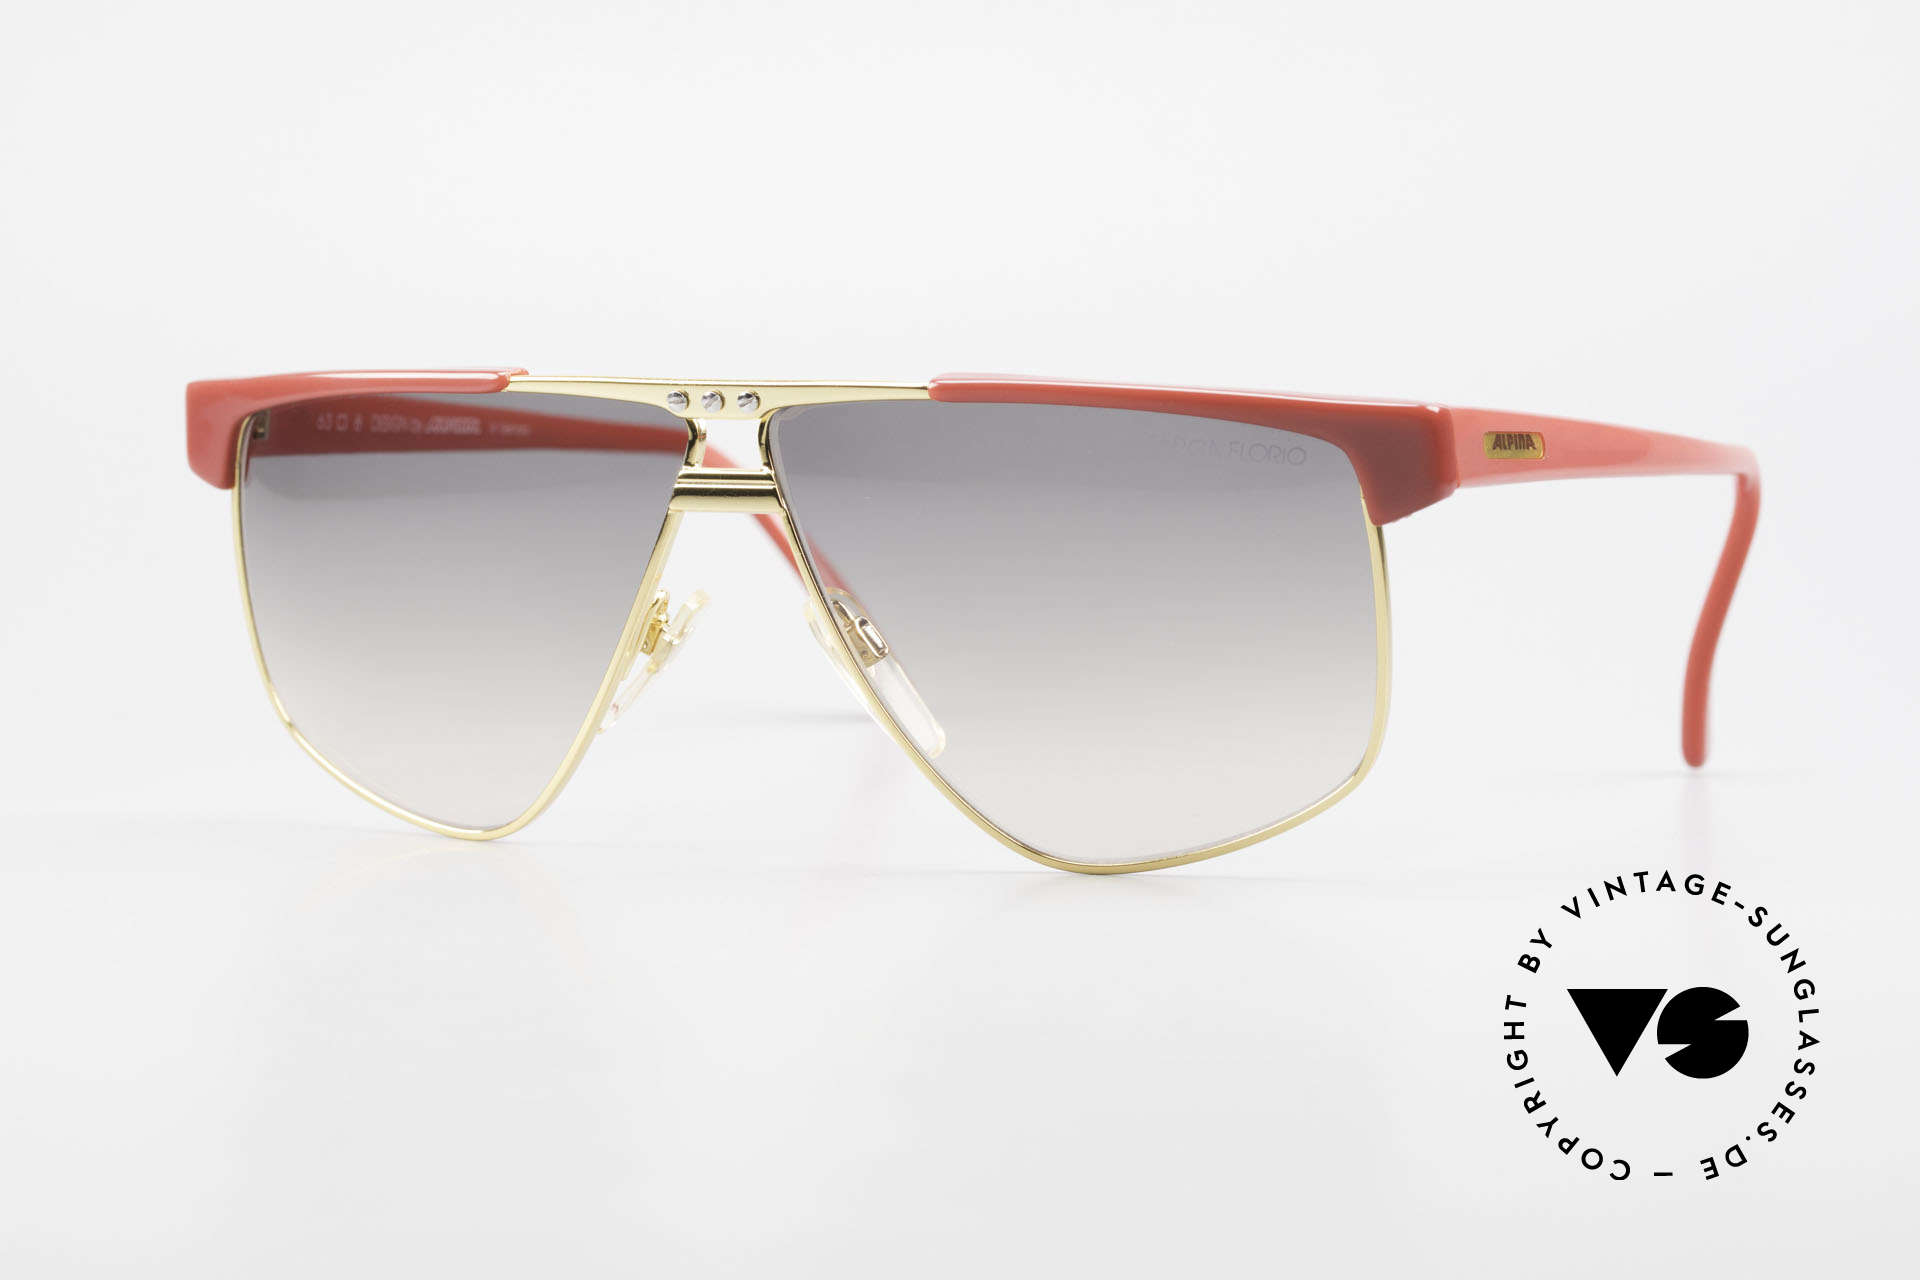 Alpina Targa Florio 33 Rallye Sunglasses Vintage 80's, expressive Alpina sports sunglasses from app. 1987, Made for Men and Women